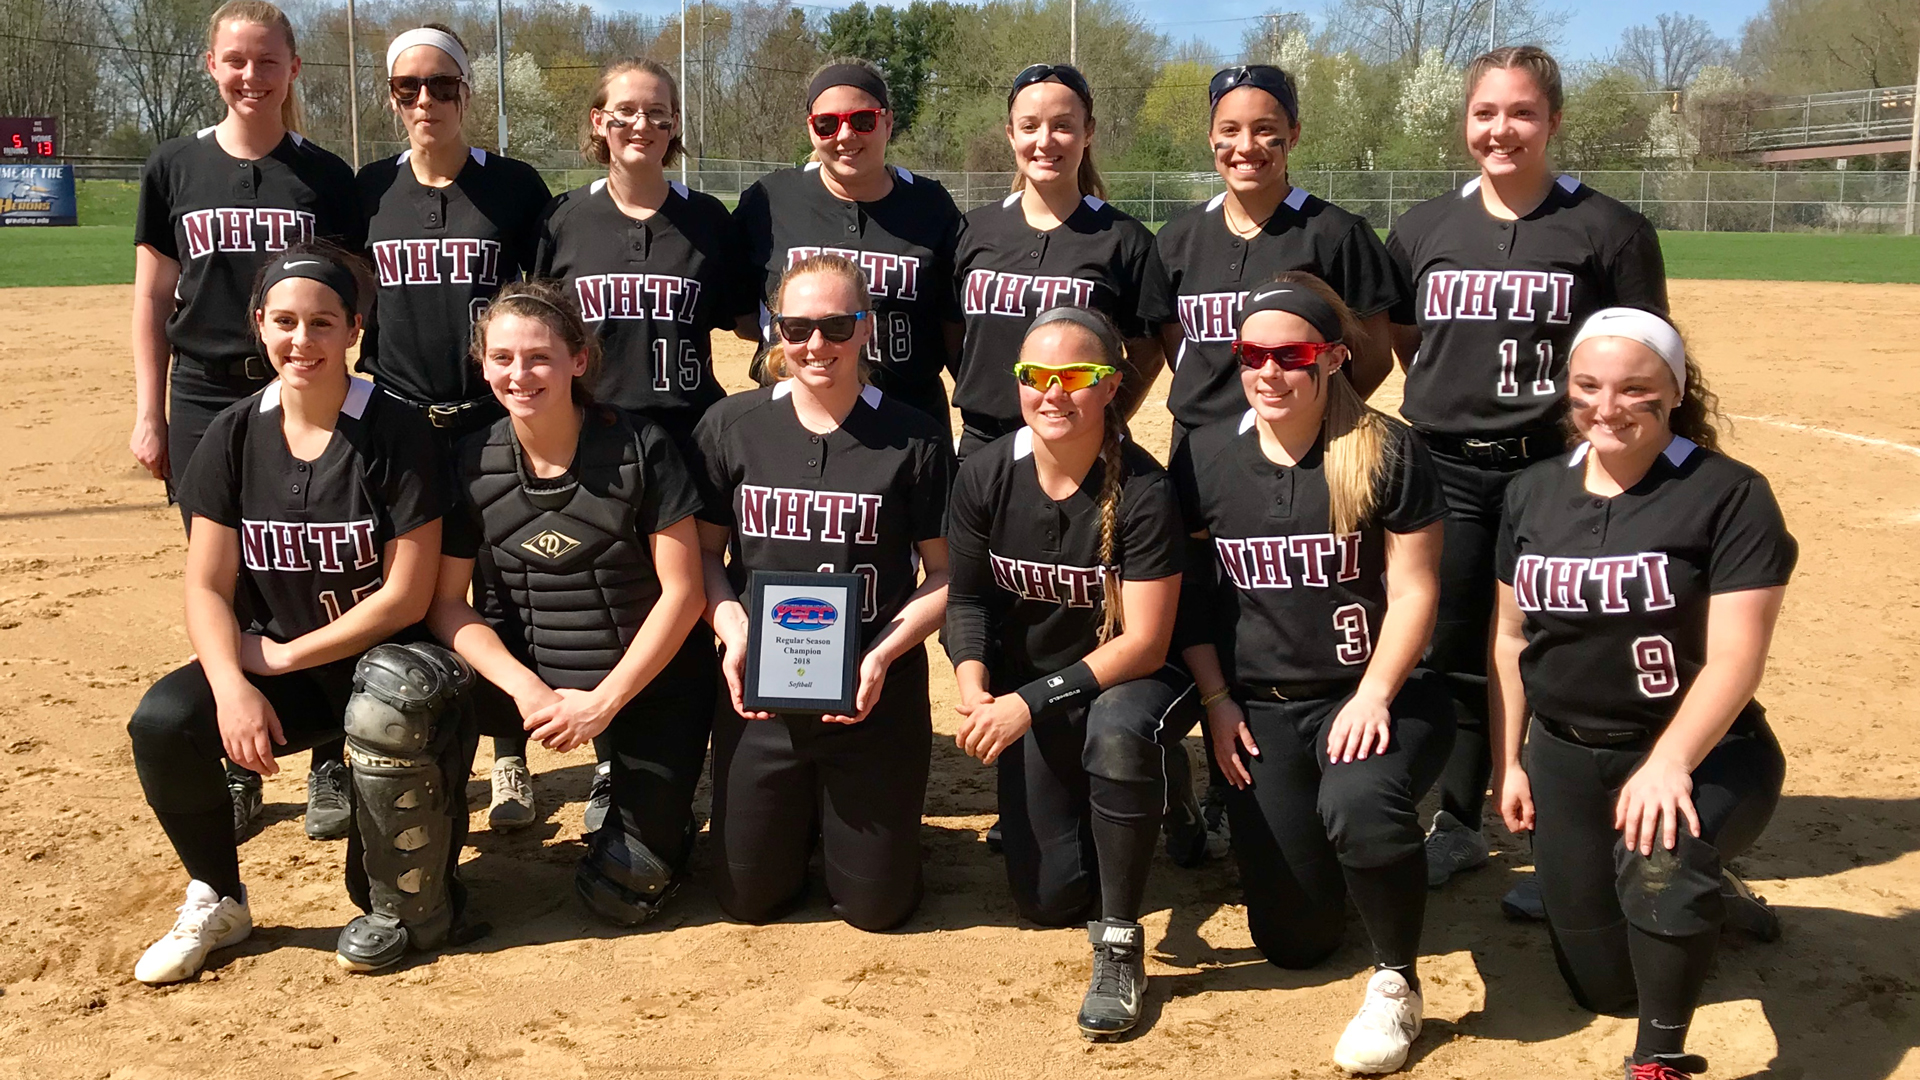 NHTI wins back to back YSCC Championships in Softball